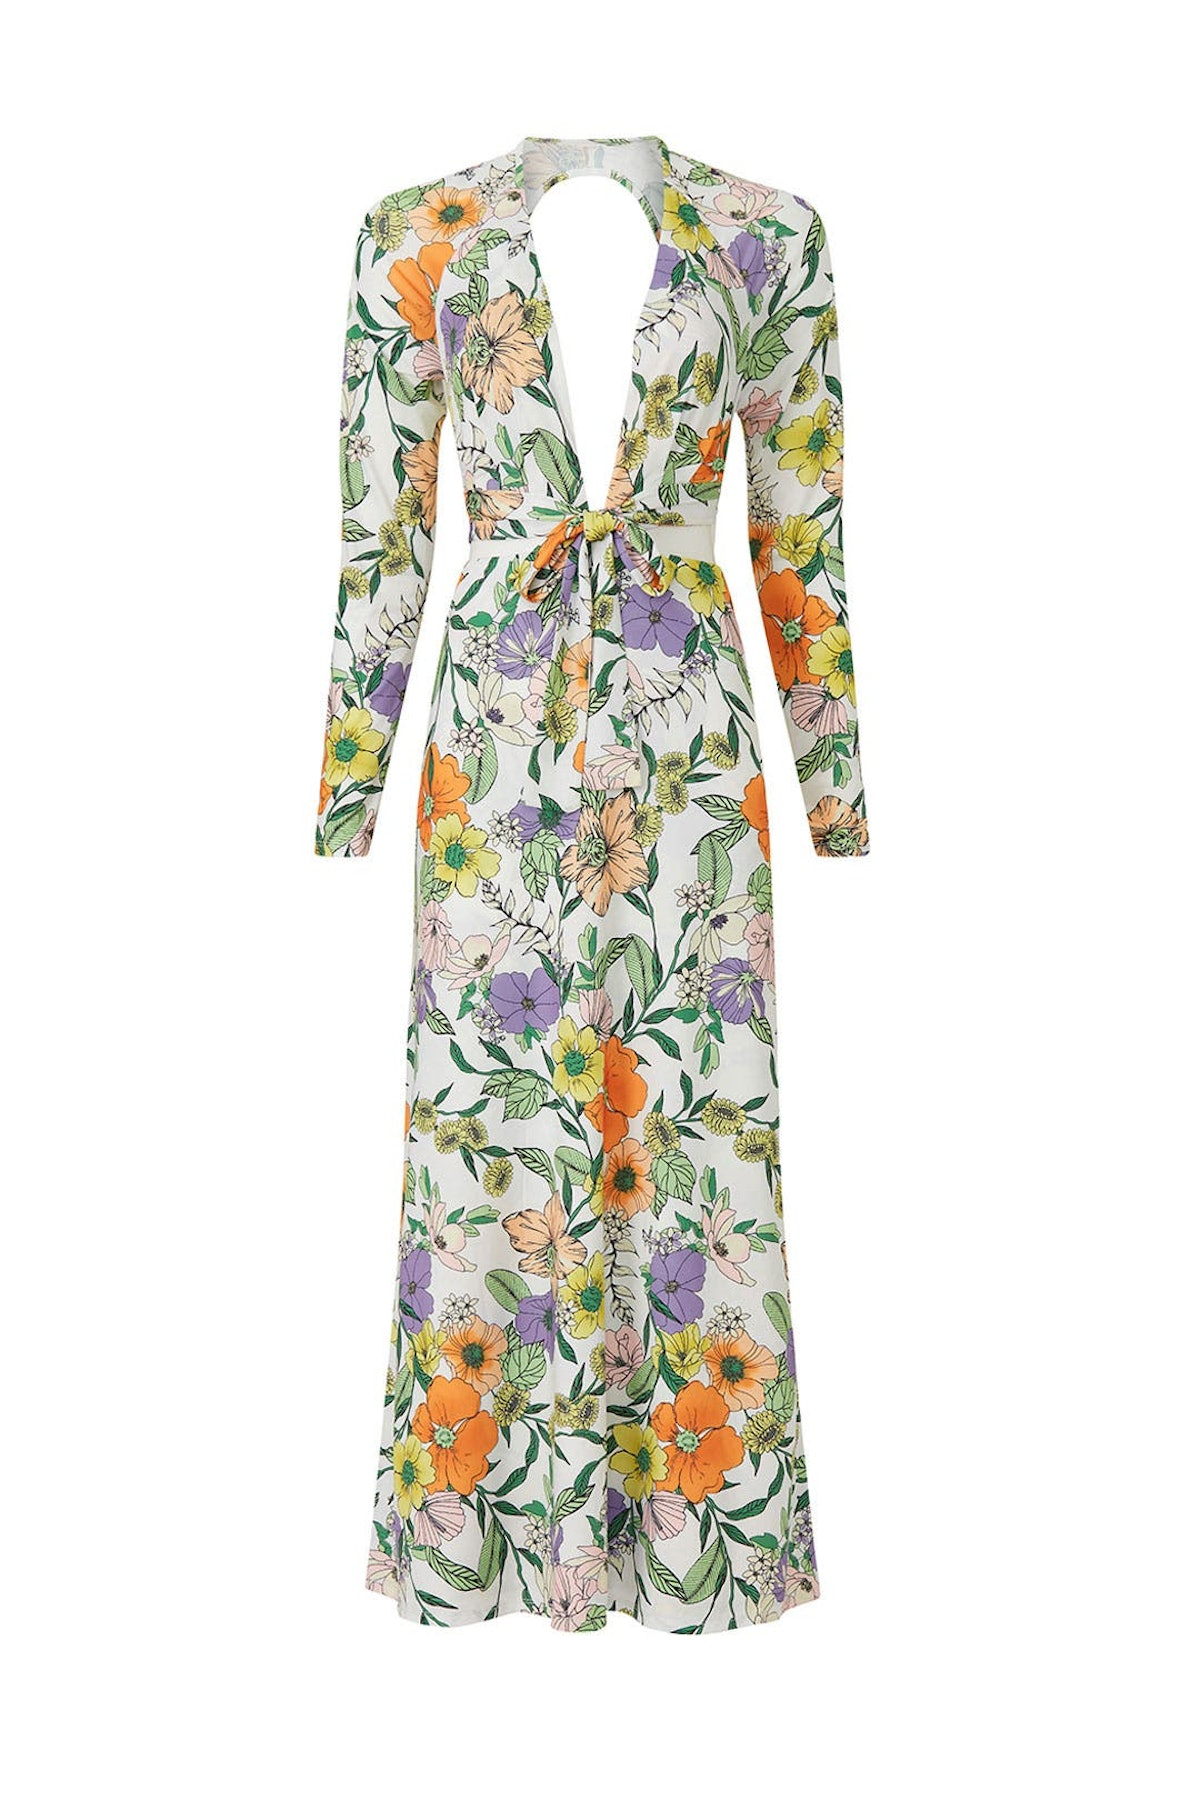 Assi maxi floral dress from AFRM, available to rent or shop via Rent The Runway.